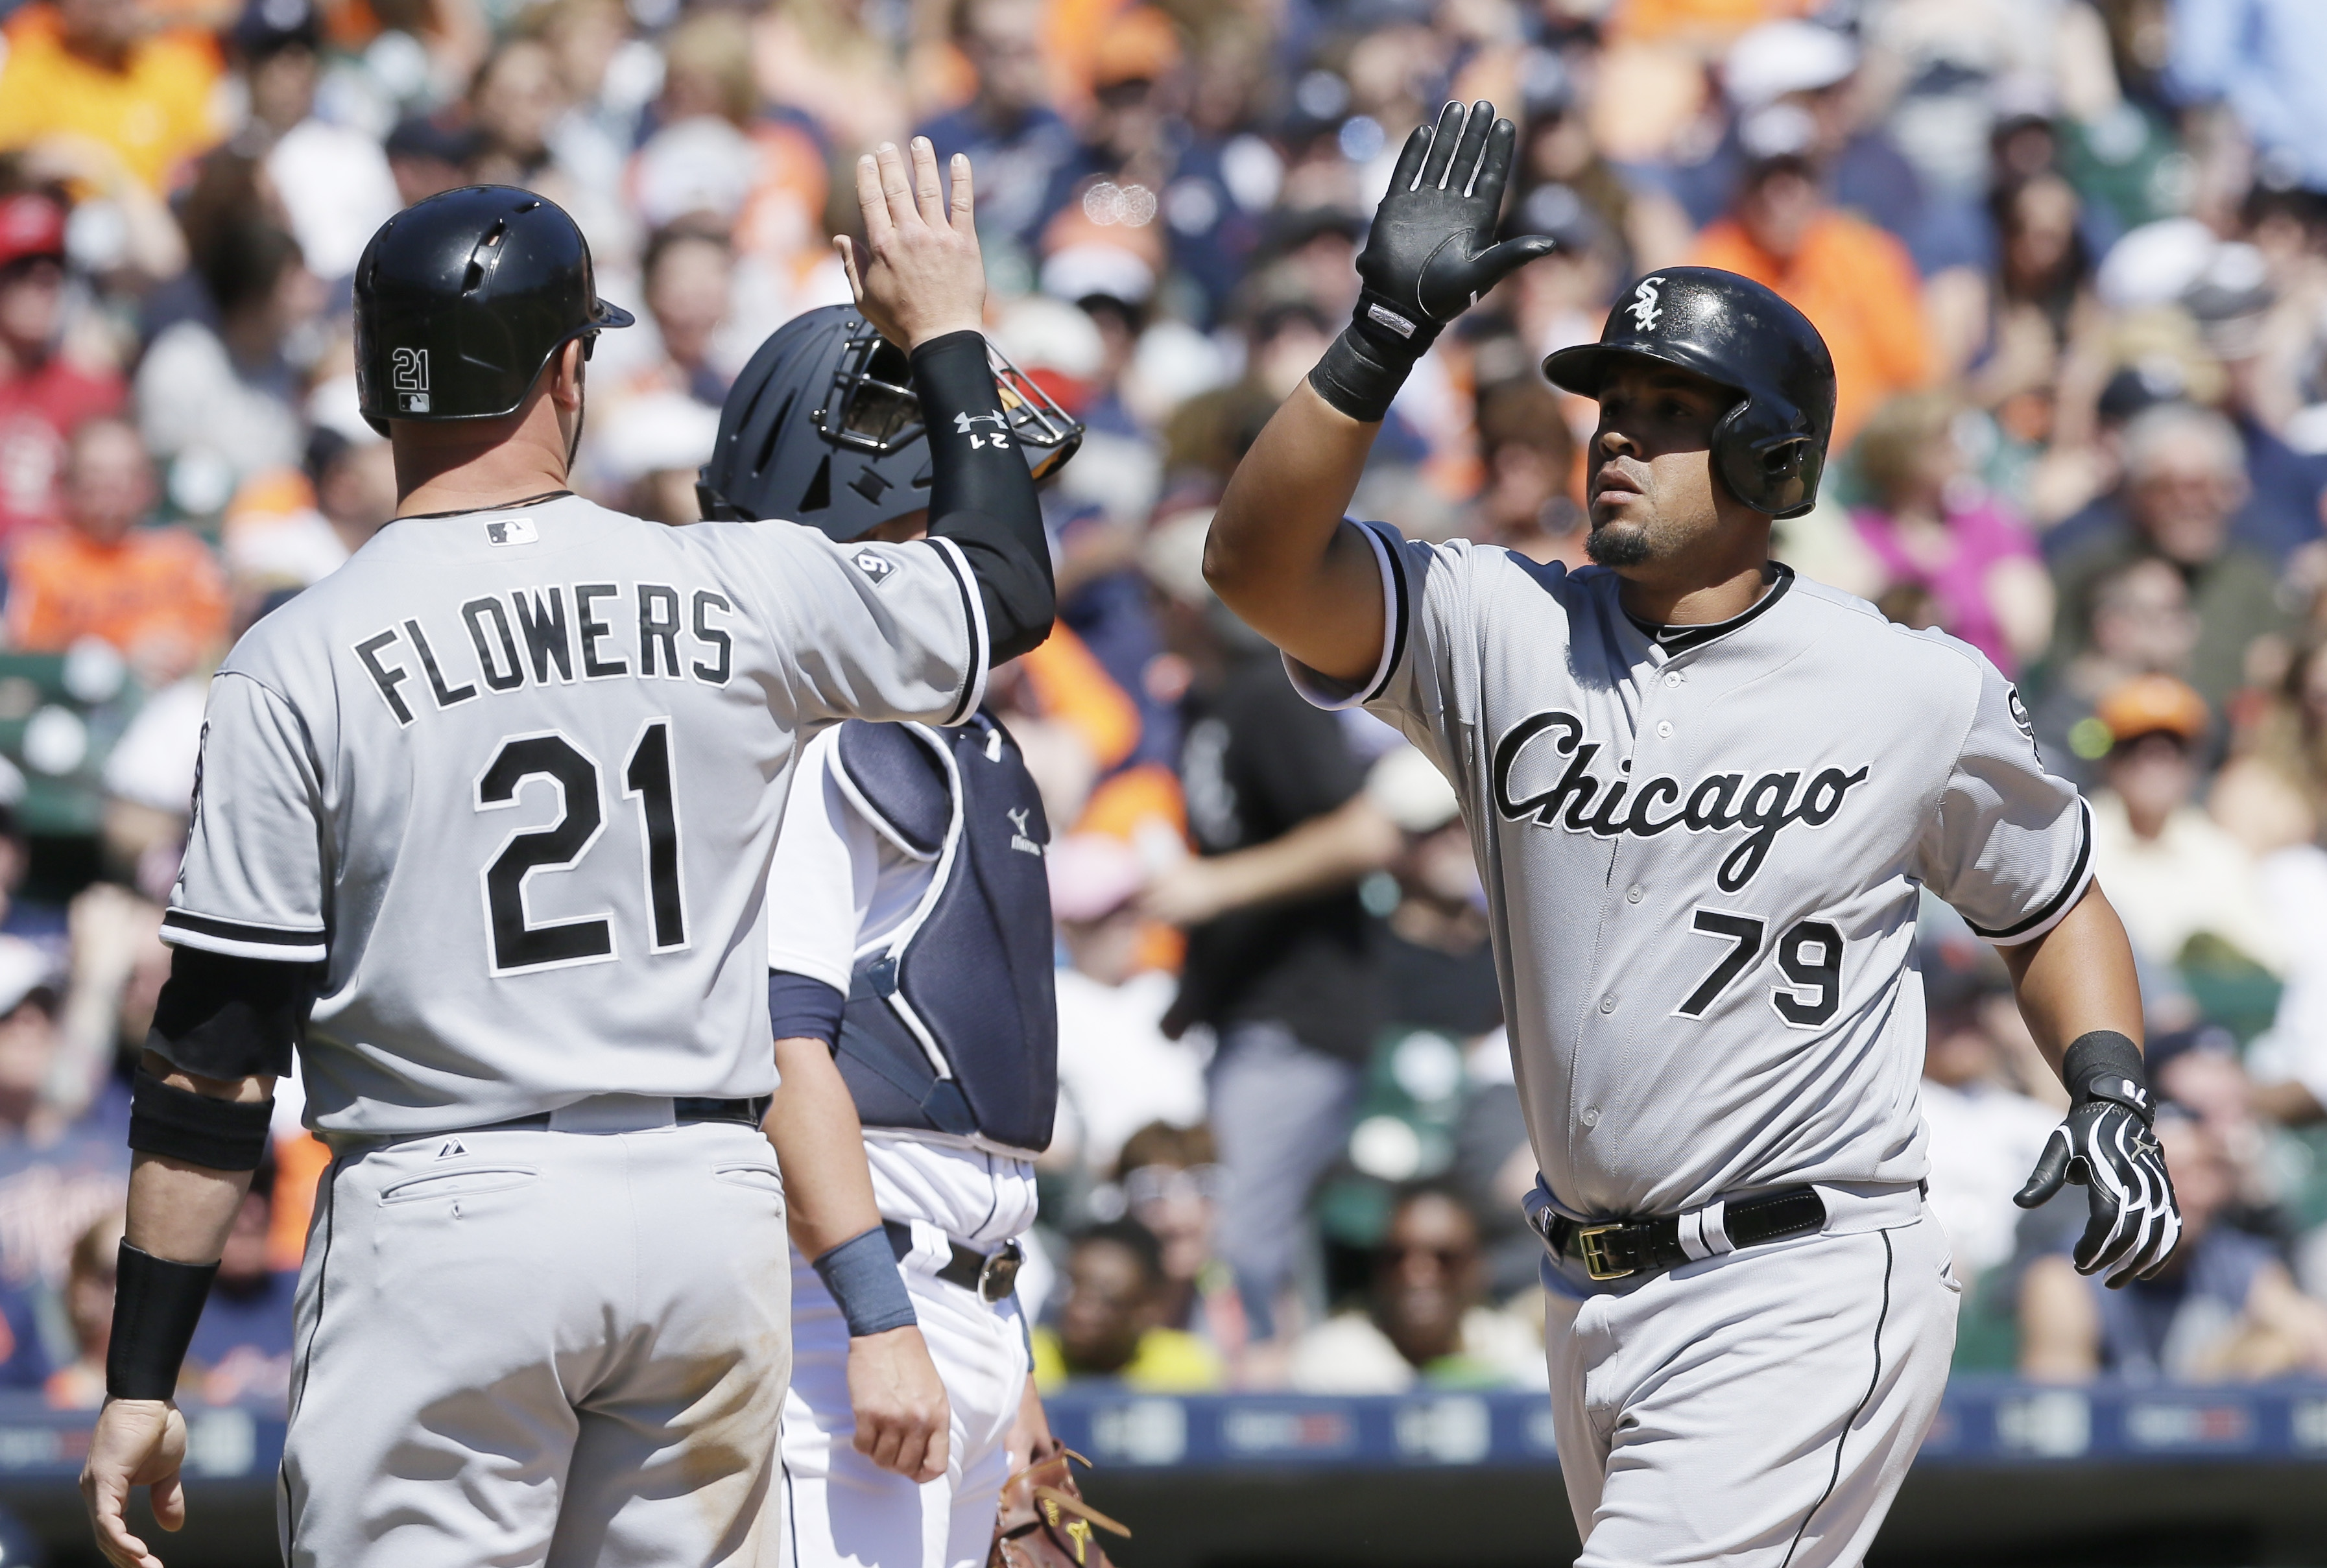 Chicago White Sox's Jose Abreu (79) greets Tyler Flowers after Abreu's grand slam during the fourth inning of a baseball game against the Detroit Tigers, Saturday, April 18, 2015, in Detroit. (AP Photo/Carlos Osorio)